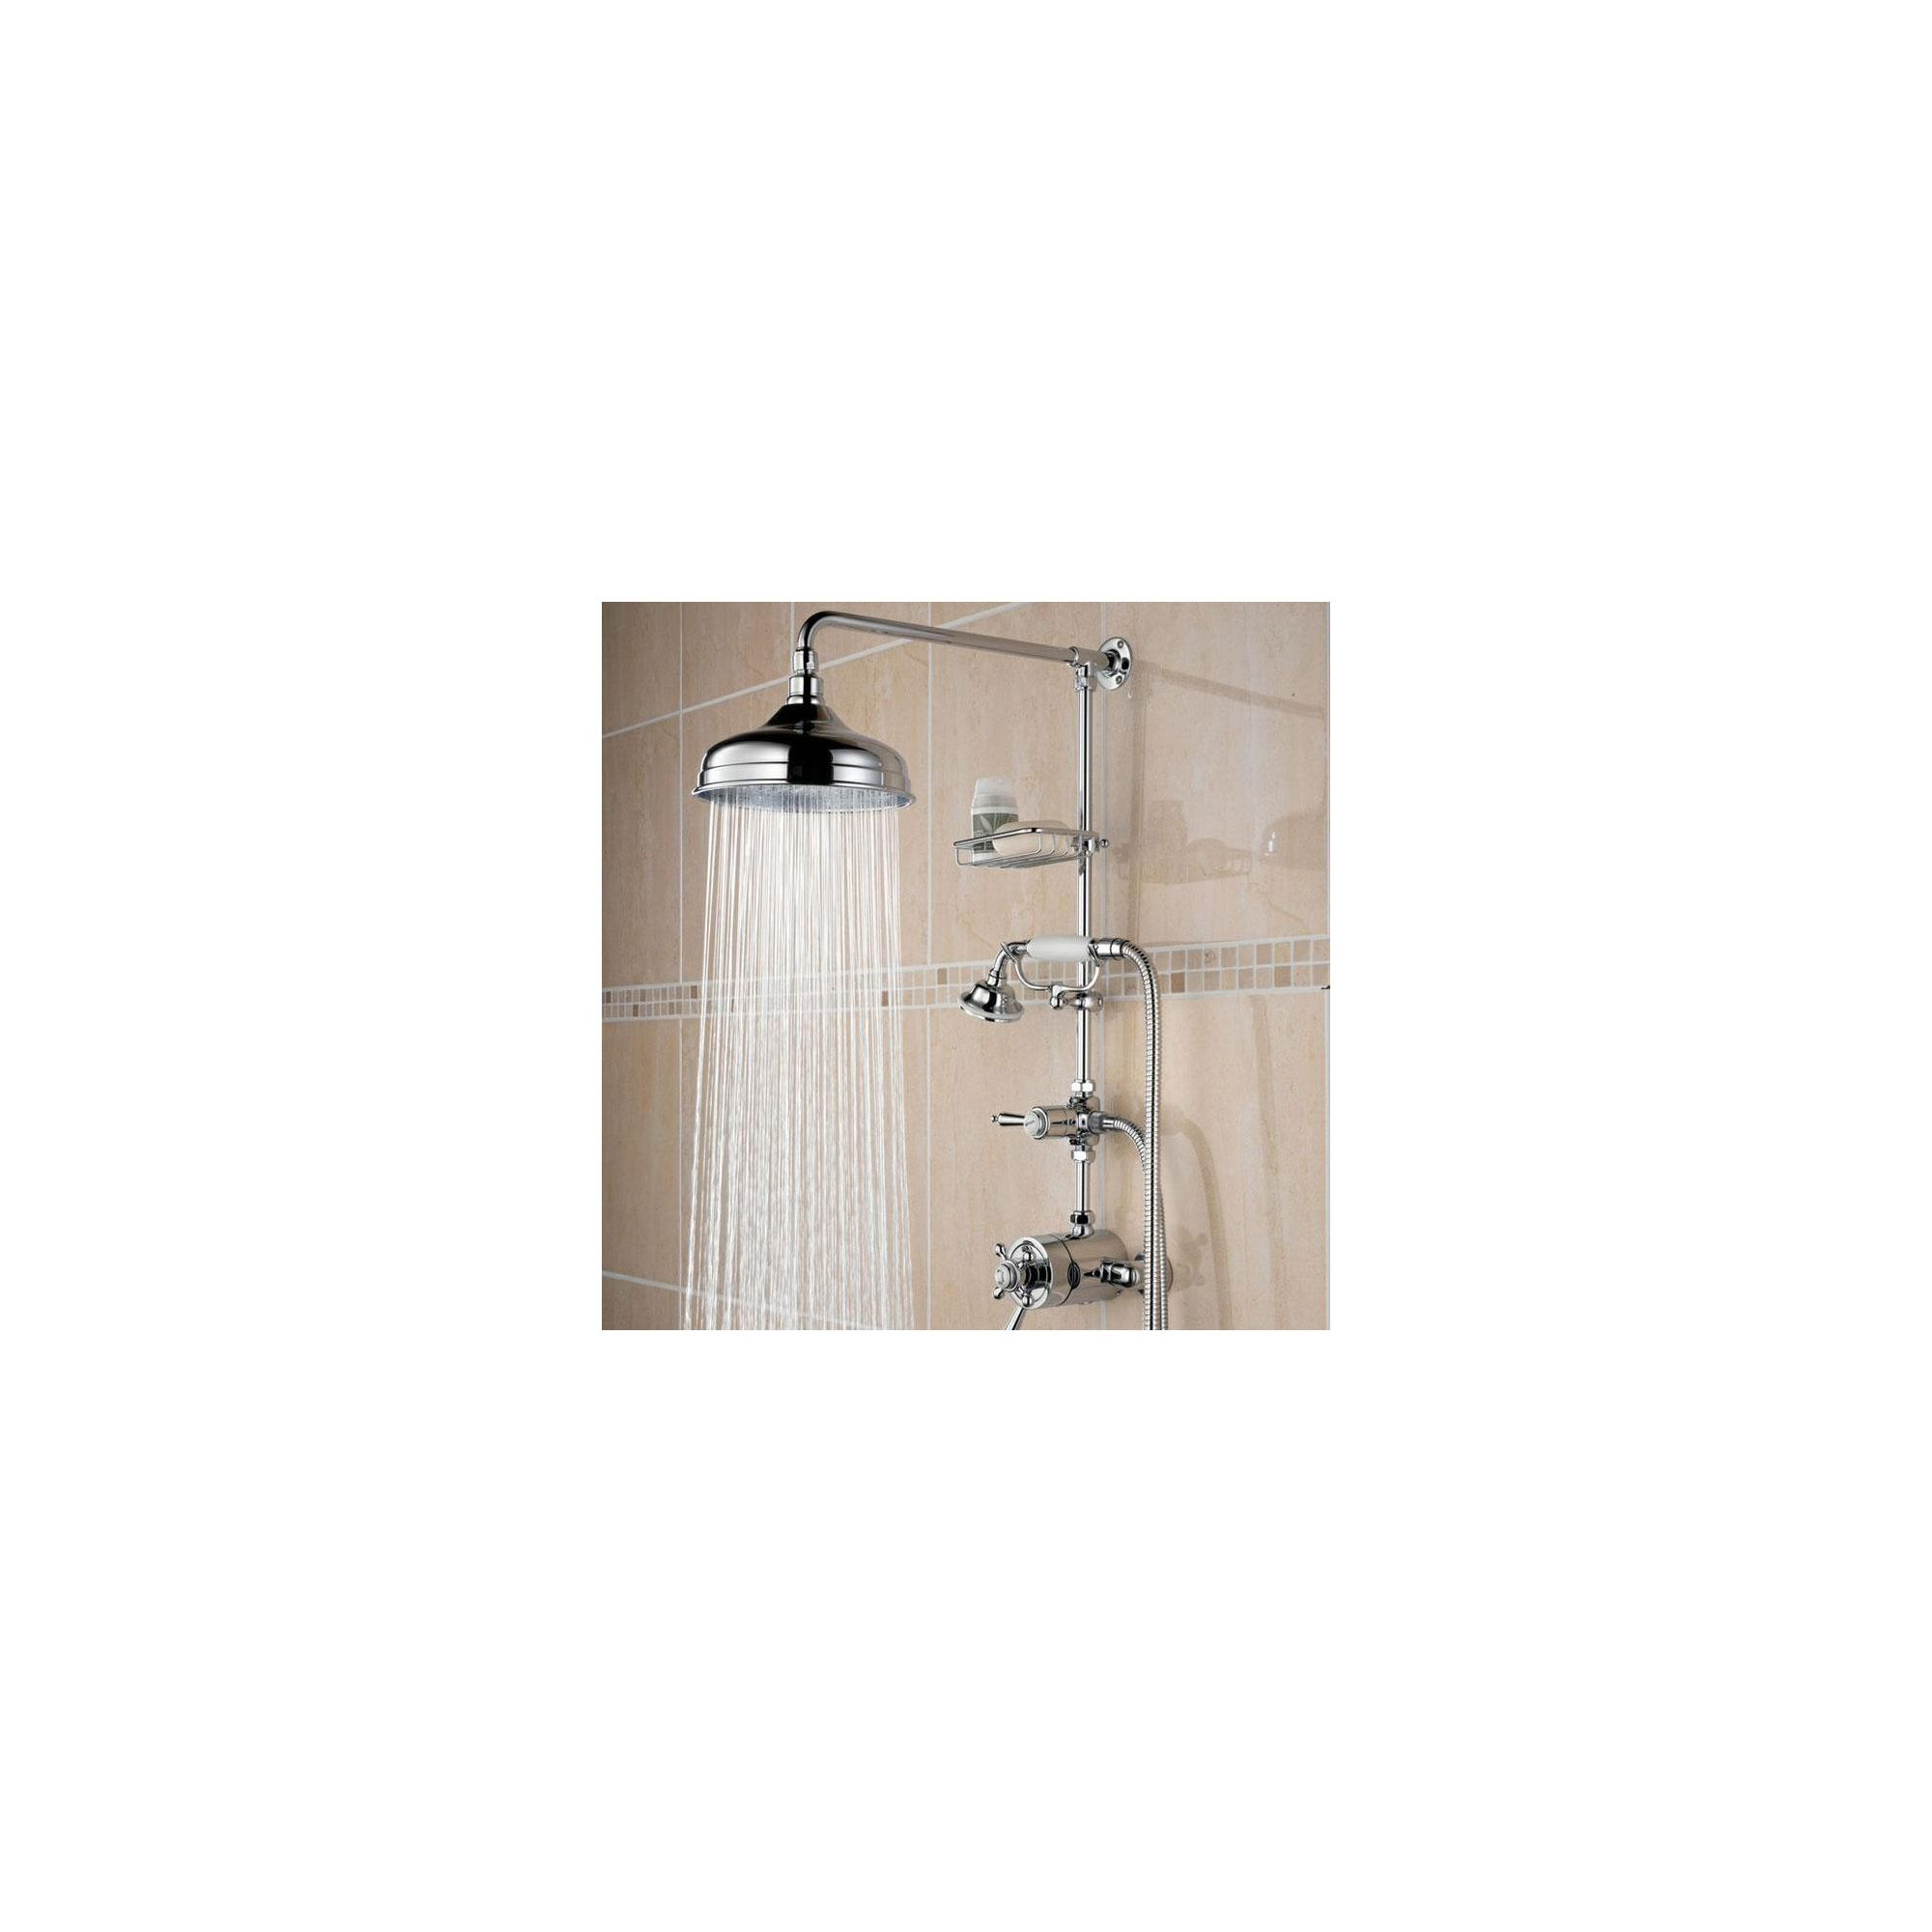 Bristan Trinity Thermostatic Surface Mounted Shower with Rigid Riser and Divertor to Shower Handset Chrome Plated at Tesco Direct